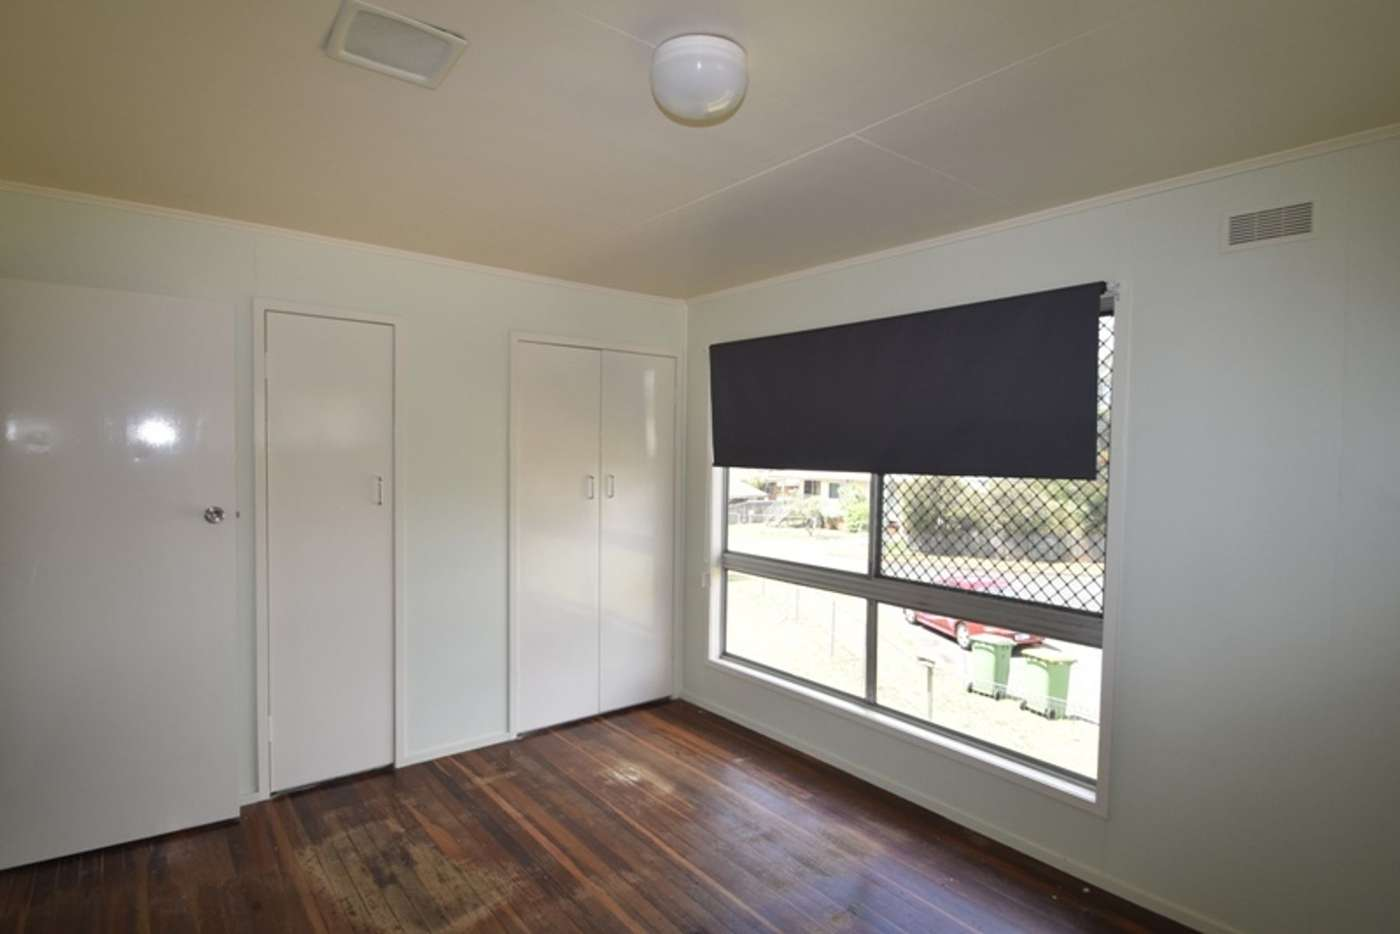 Sixth view of Homely house listing, 7 Shaw Court, Harristown QLD 4350